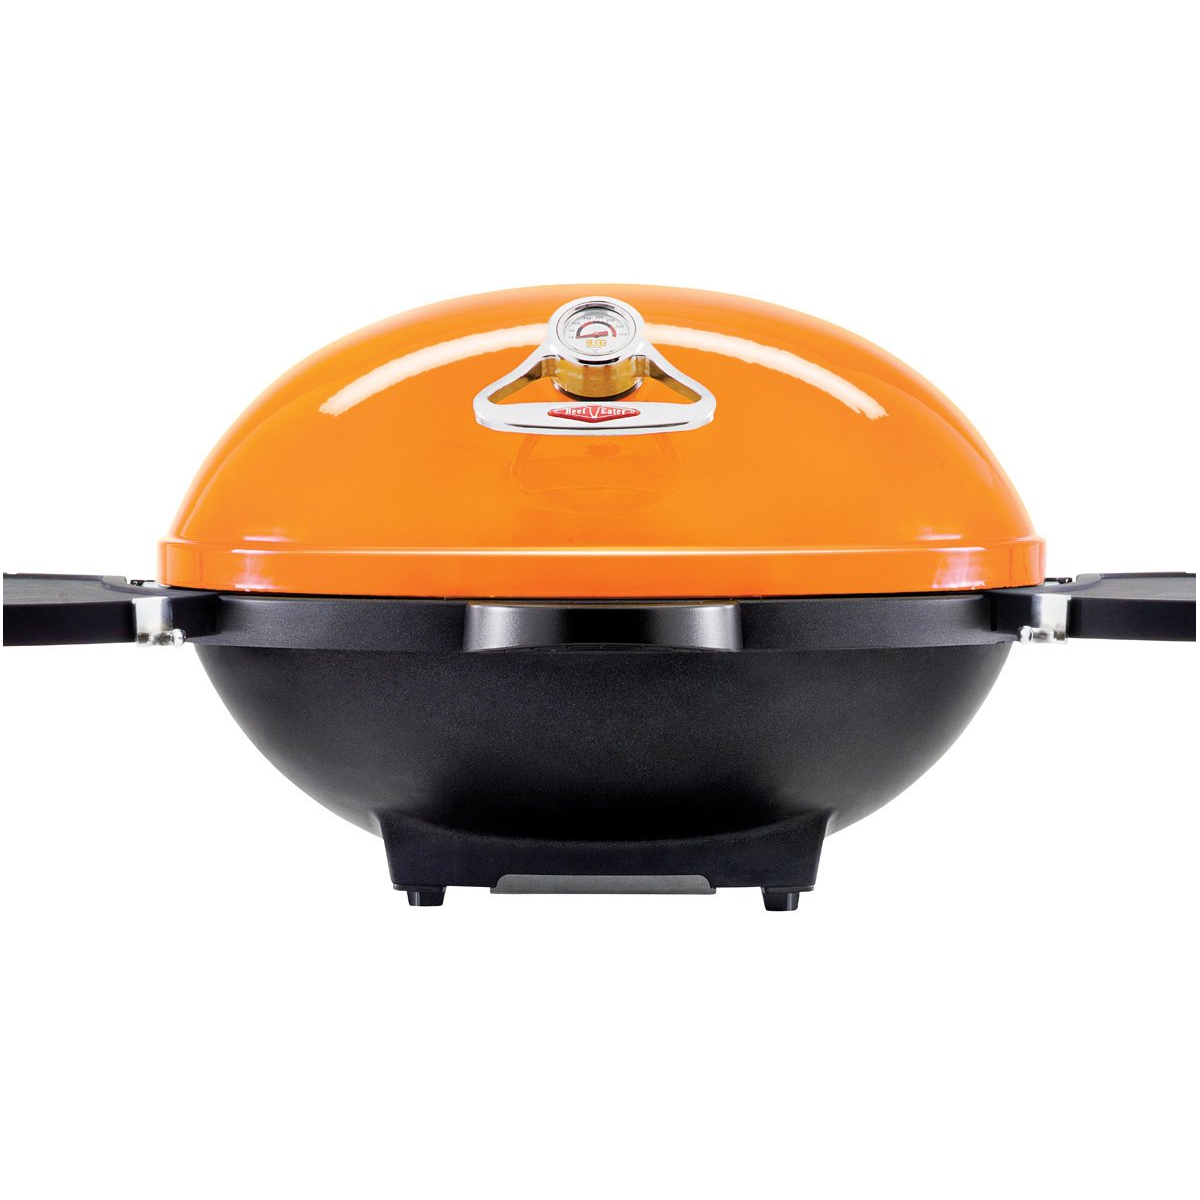 Beefeater BB18224 Bugg Mobile LPG BBQ 127920